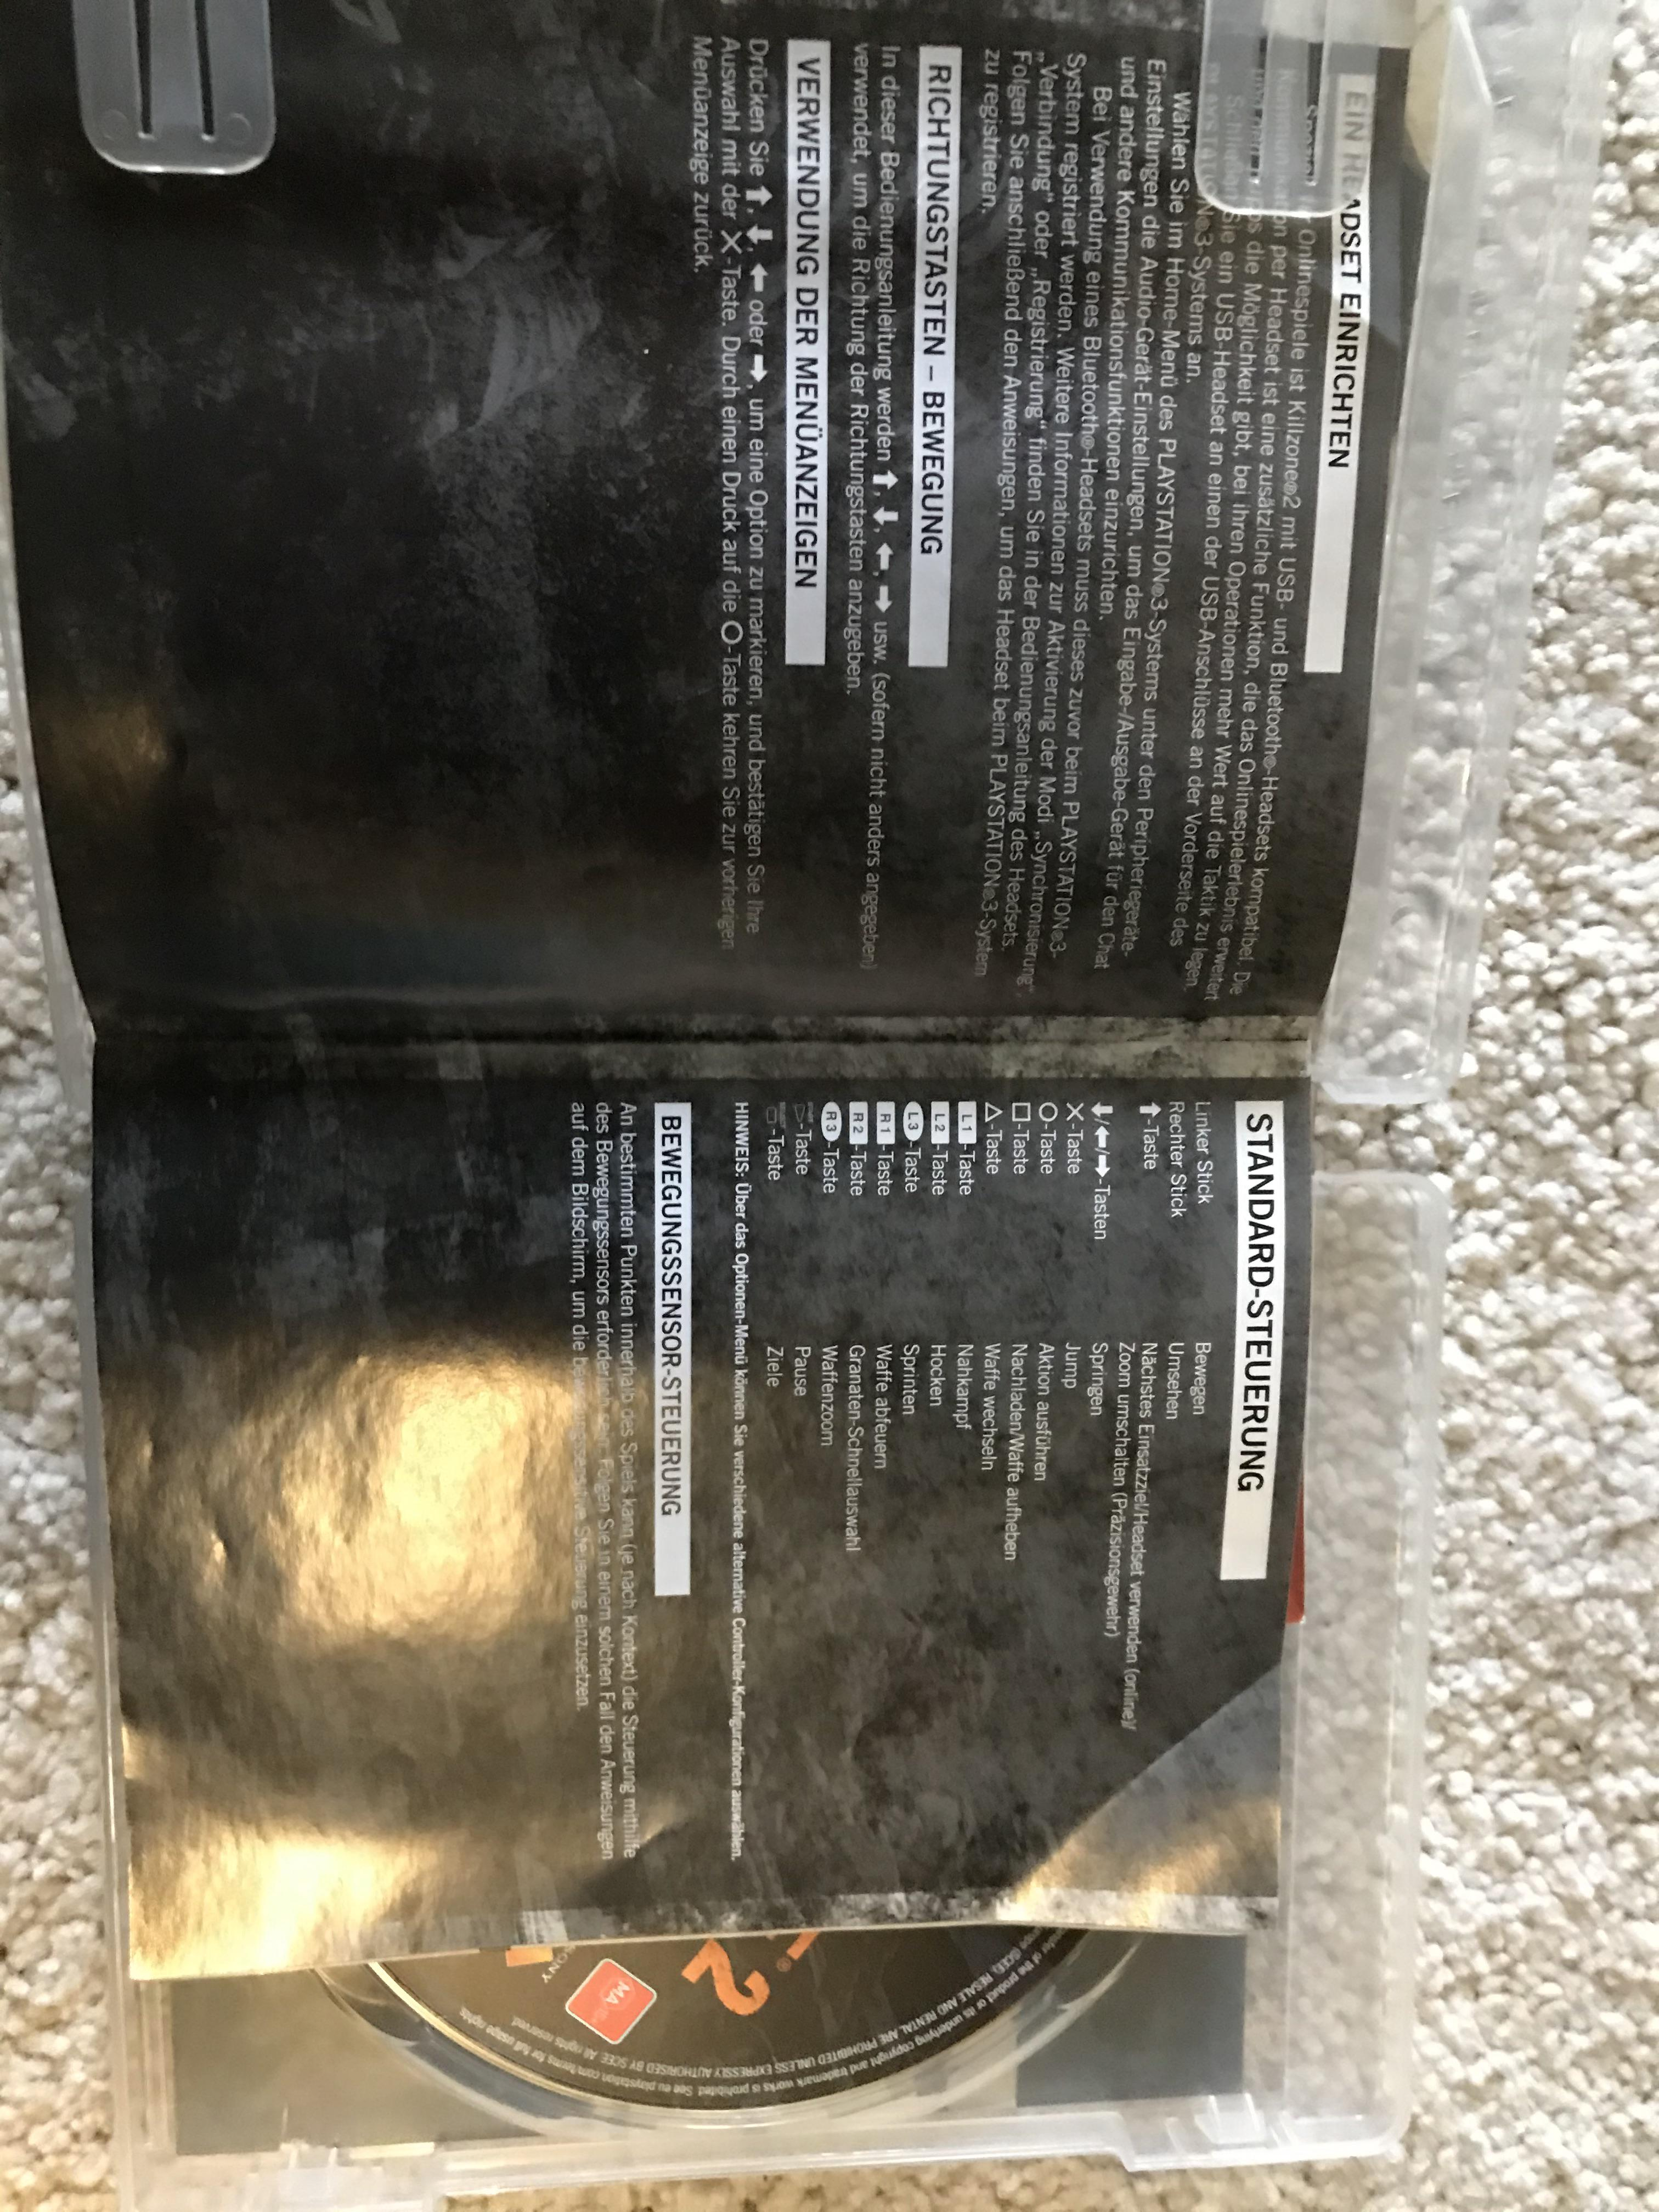 """Taktik Ps3 : taktik, Someone, """"shitty, Censored, German, Ones"""", Previously, Posted, Killzone, Writings, Booklet"""